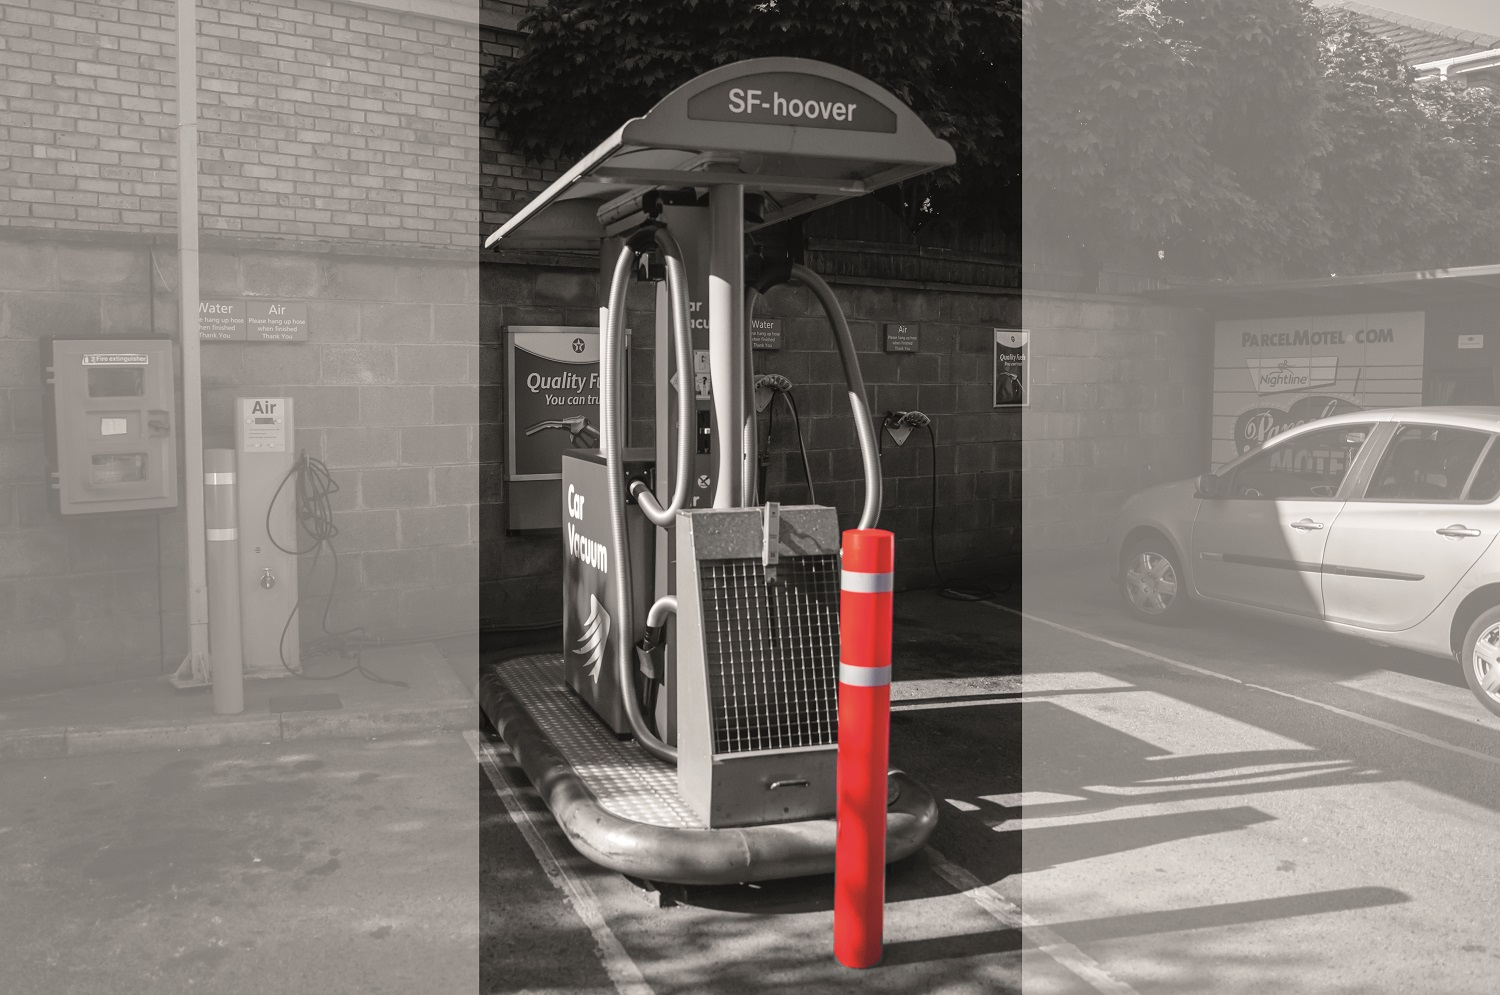 Addgards Wet Wipe Dispensers and Bollard Sleeves for forecourts